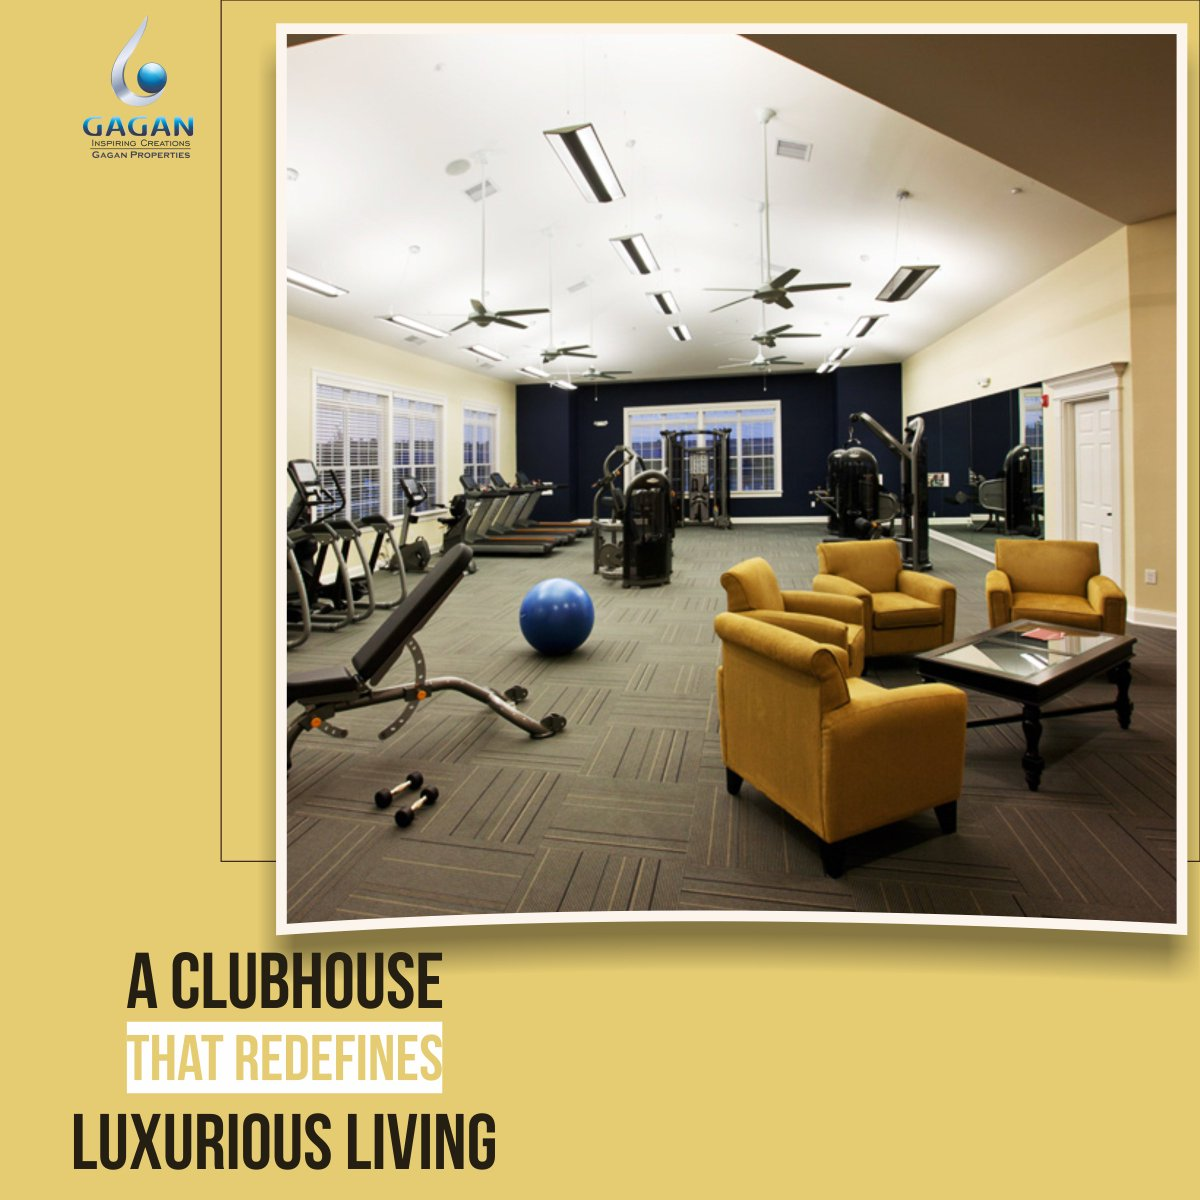 If you believe in living life to the fullest, #GaganRenaissance is the place for you! Equipped with a world class #Clubhouse , it takes recreation to a whole new level. And if you are fitness enthusiast you can surely indulge yourself in a daily workout session at their gym. <br>http://pic.twitter.com/epOkHgCrO9